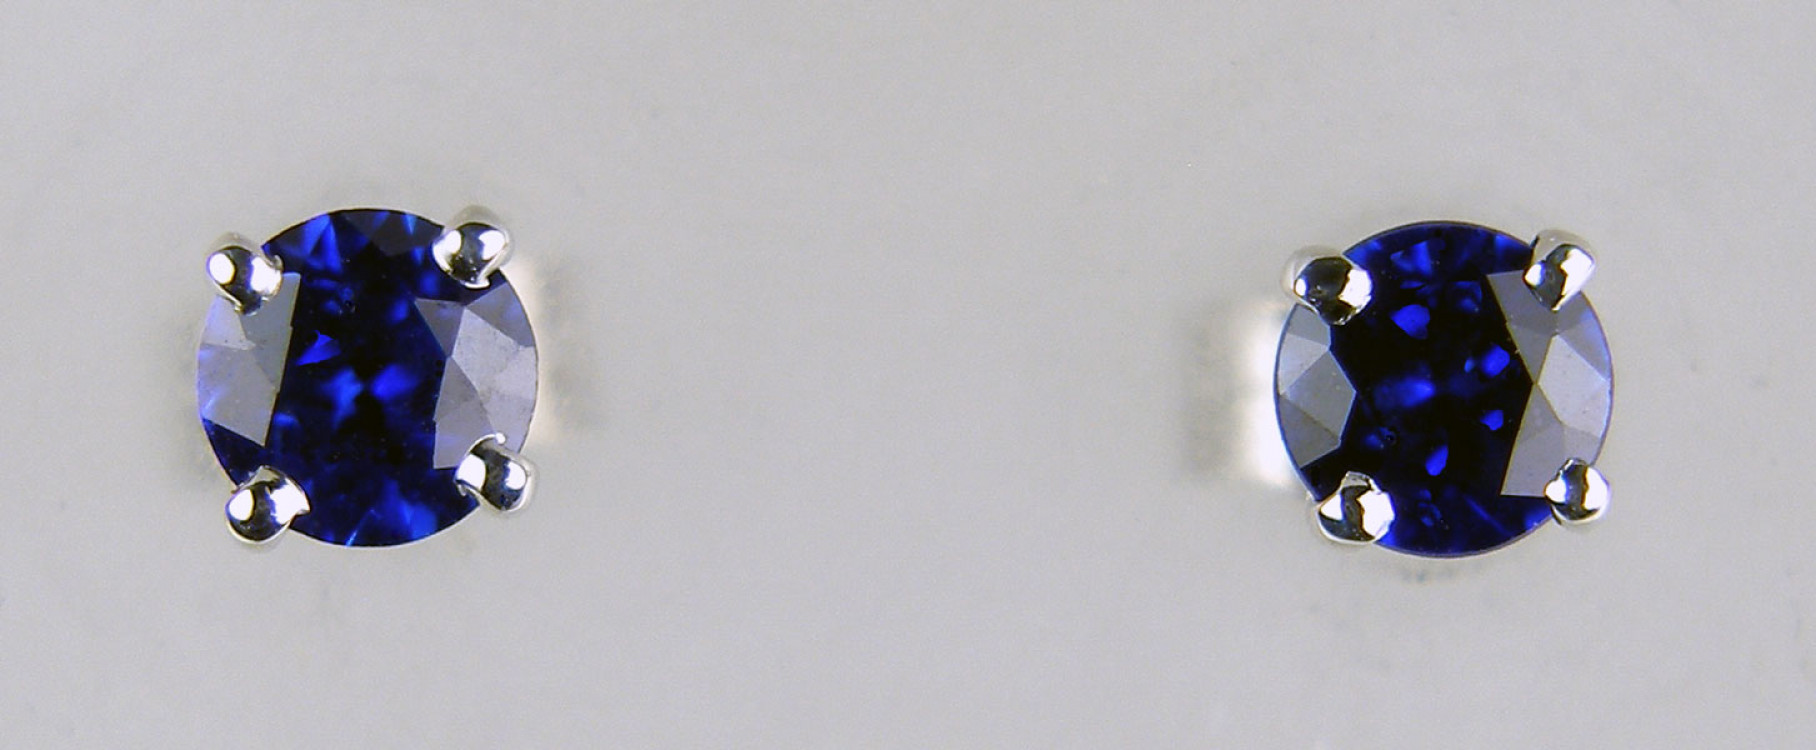 d11e3fcc4 4mm sapphire earstuds in 9ct white gold - 0.67ct round cut royal blue  sapphires mounted